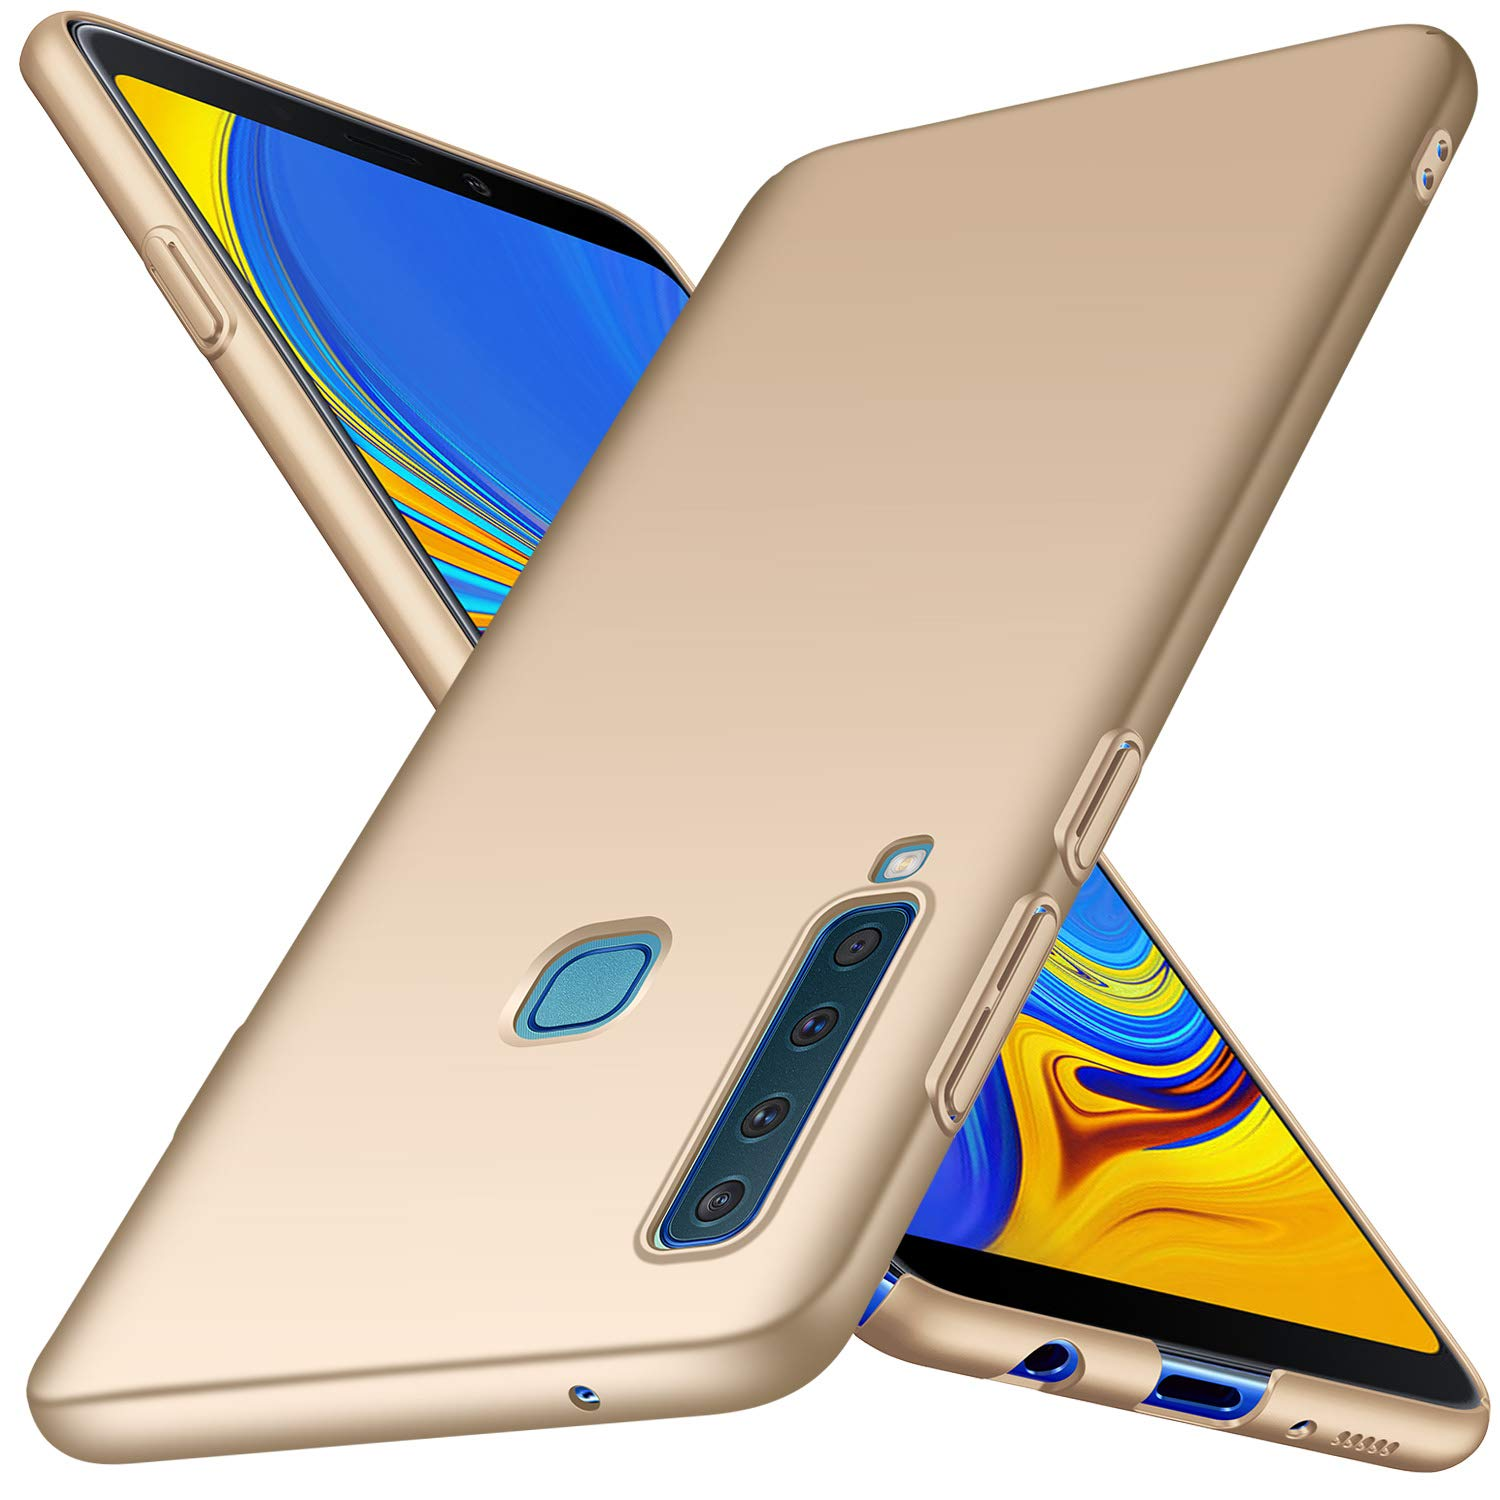 Samsung Galaxy A9 2018 Case, Almiao [Ultra-Thin] Minimalist Slim Protective Phone Case Back Cover for Galaxy A9 2018 (Smooth Gold)